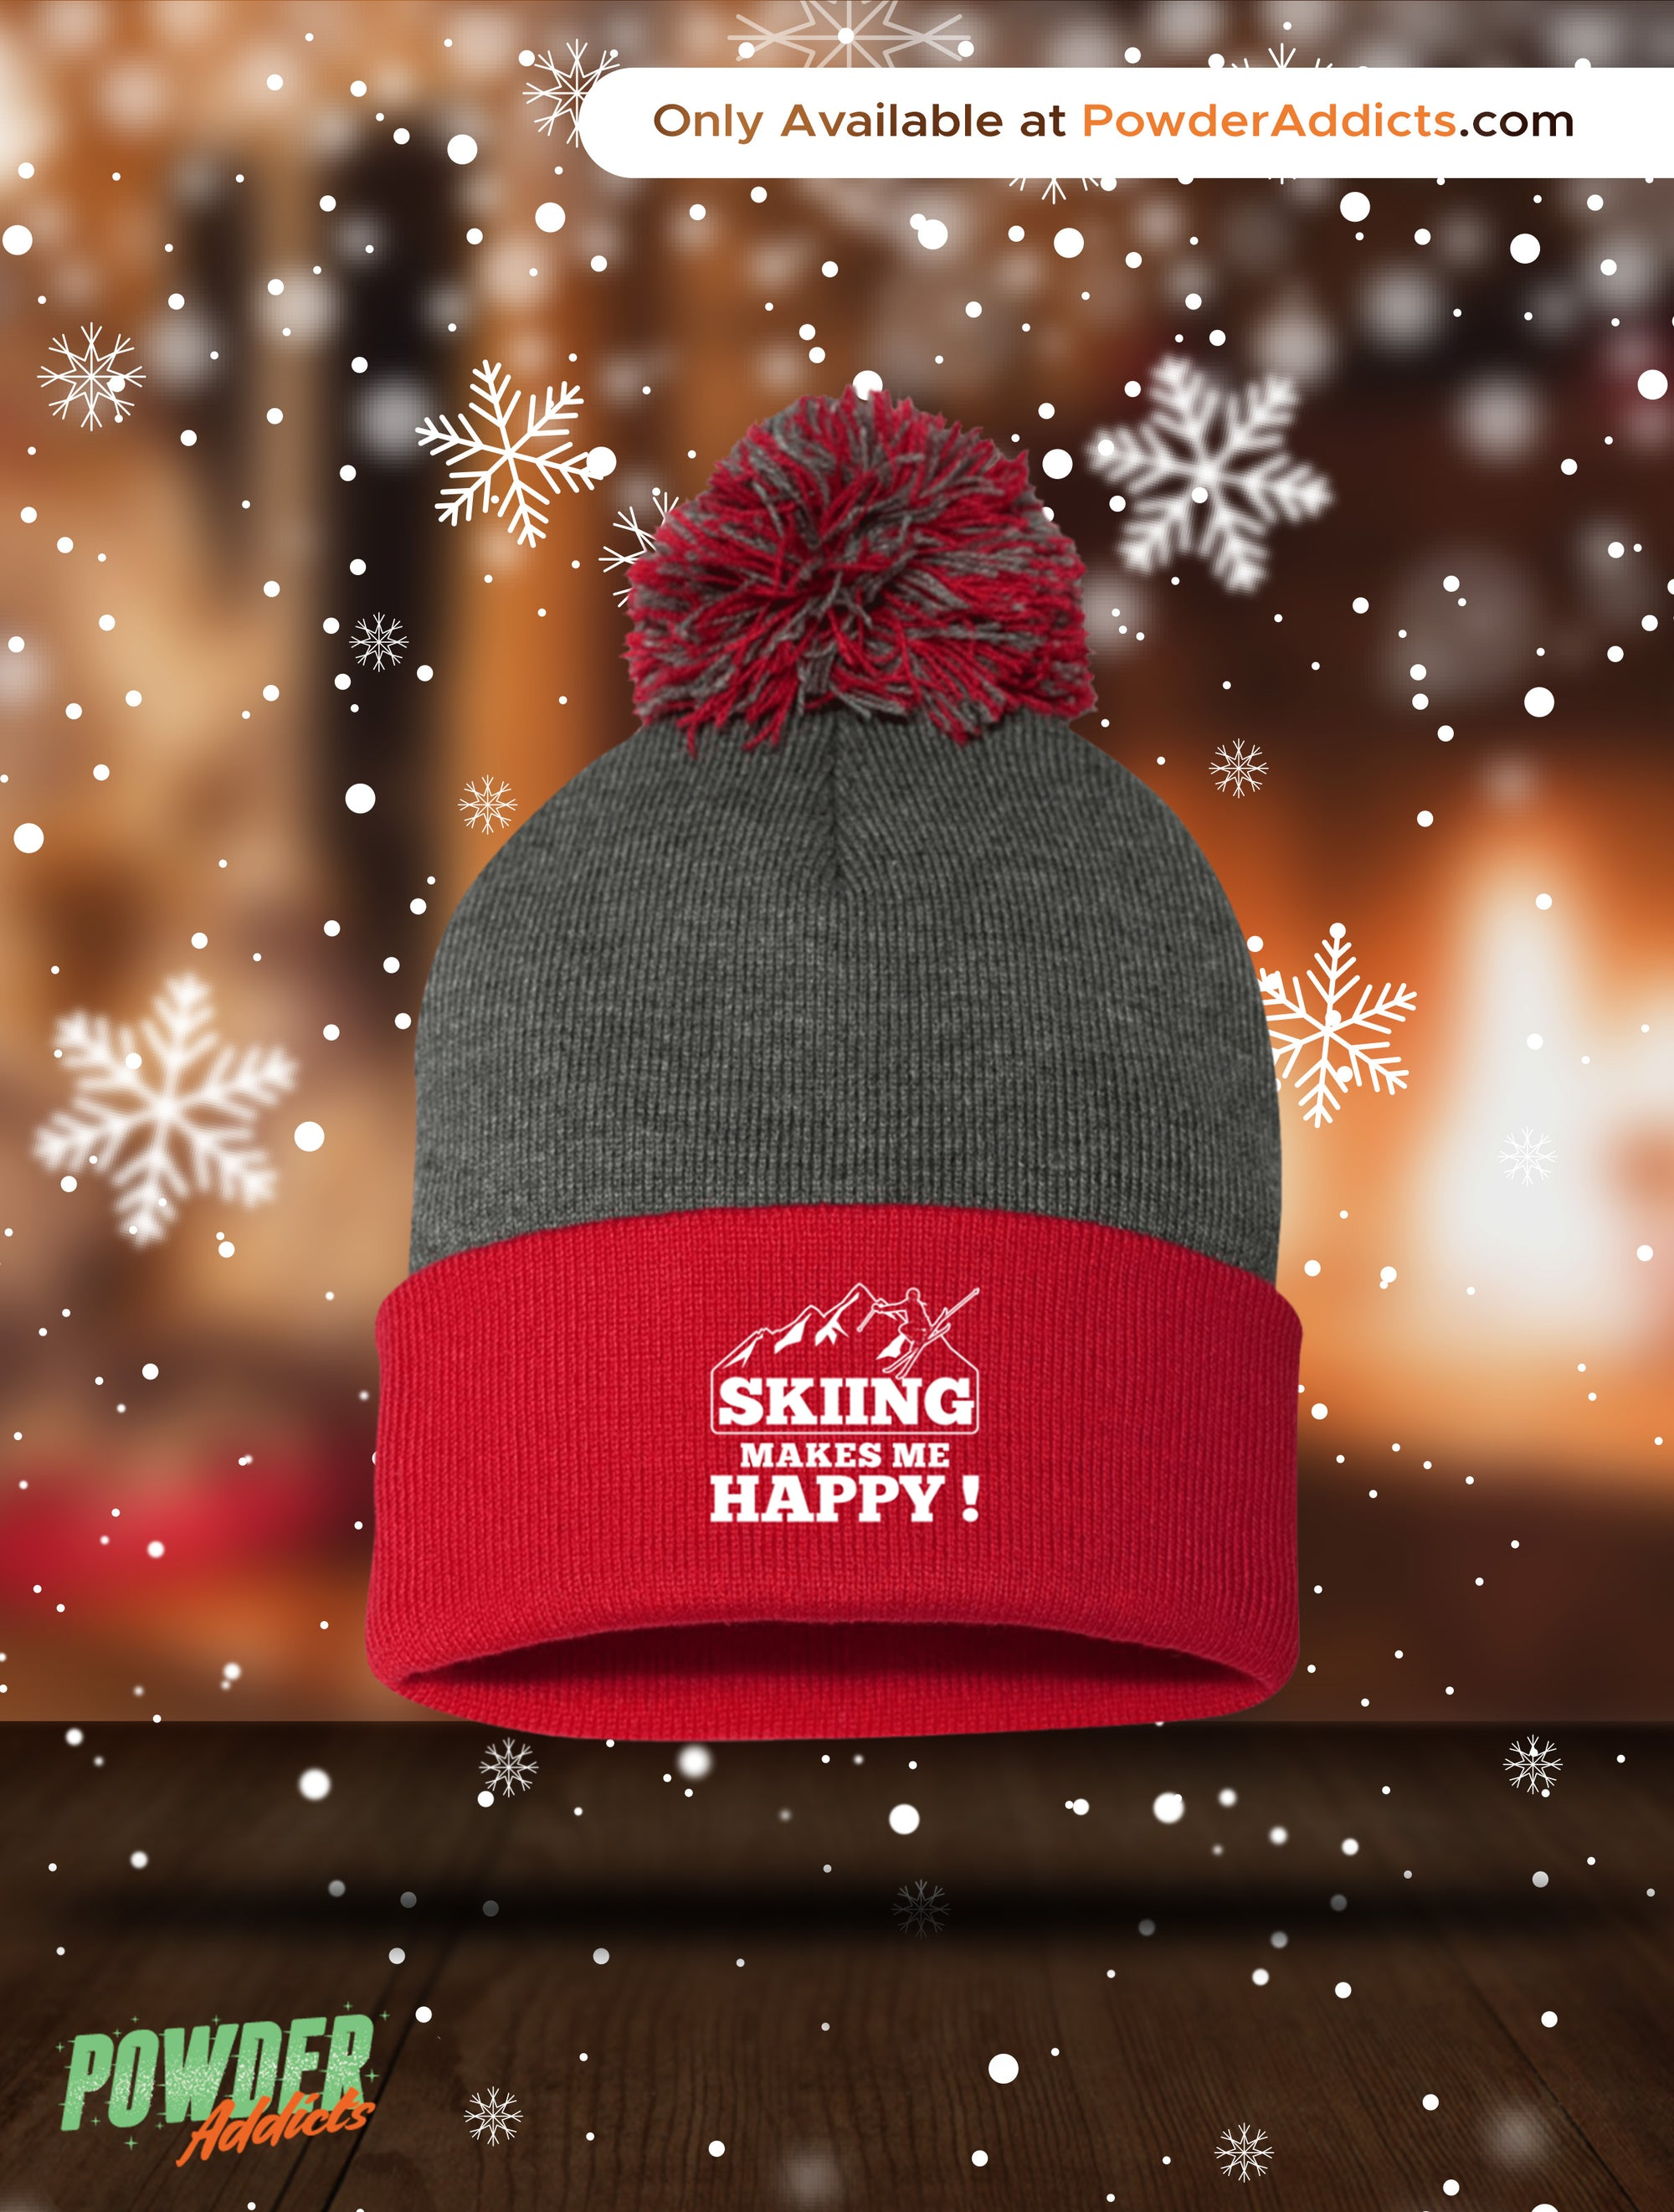 Skiing Makes Me Happy Pom Pom Knit Cap - Powderaddicts